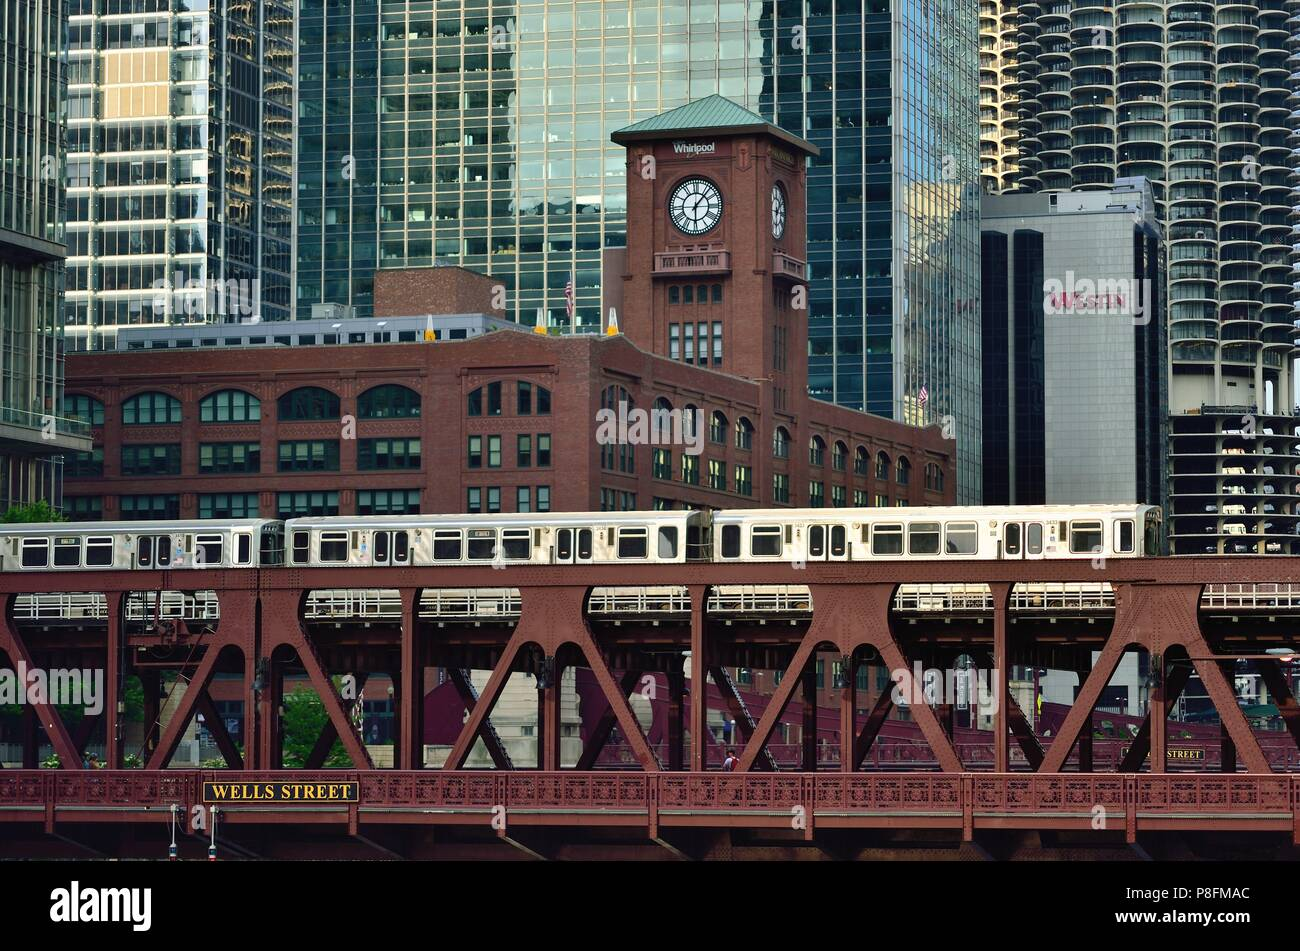 Chicago, Illinois, USA. A Chicago CTA Brown Line rapid transit train crossing the Chicago River on the Wells Street Bridge. Stock Photo